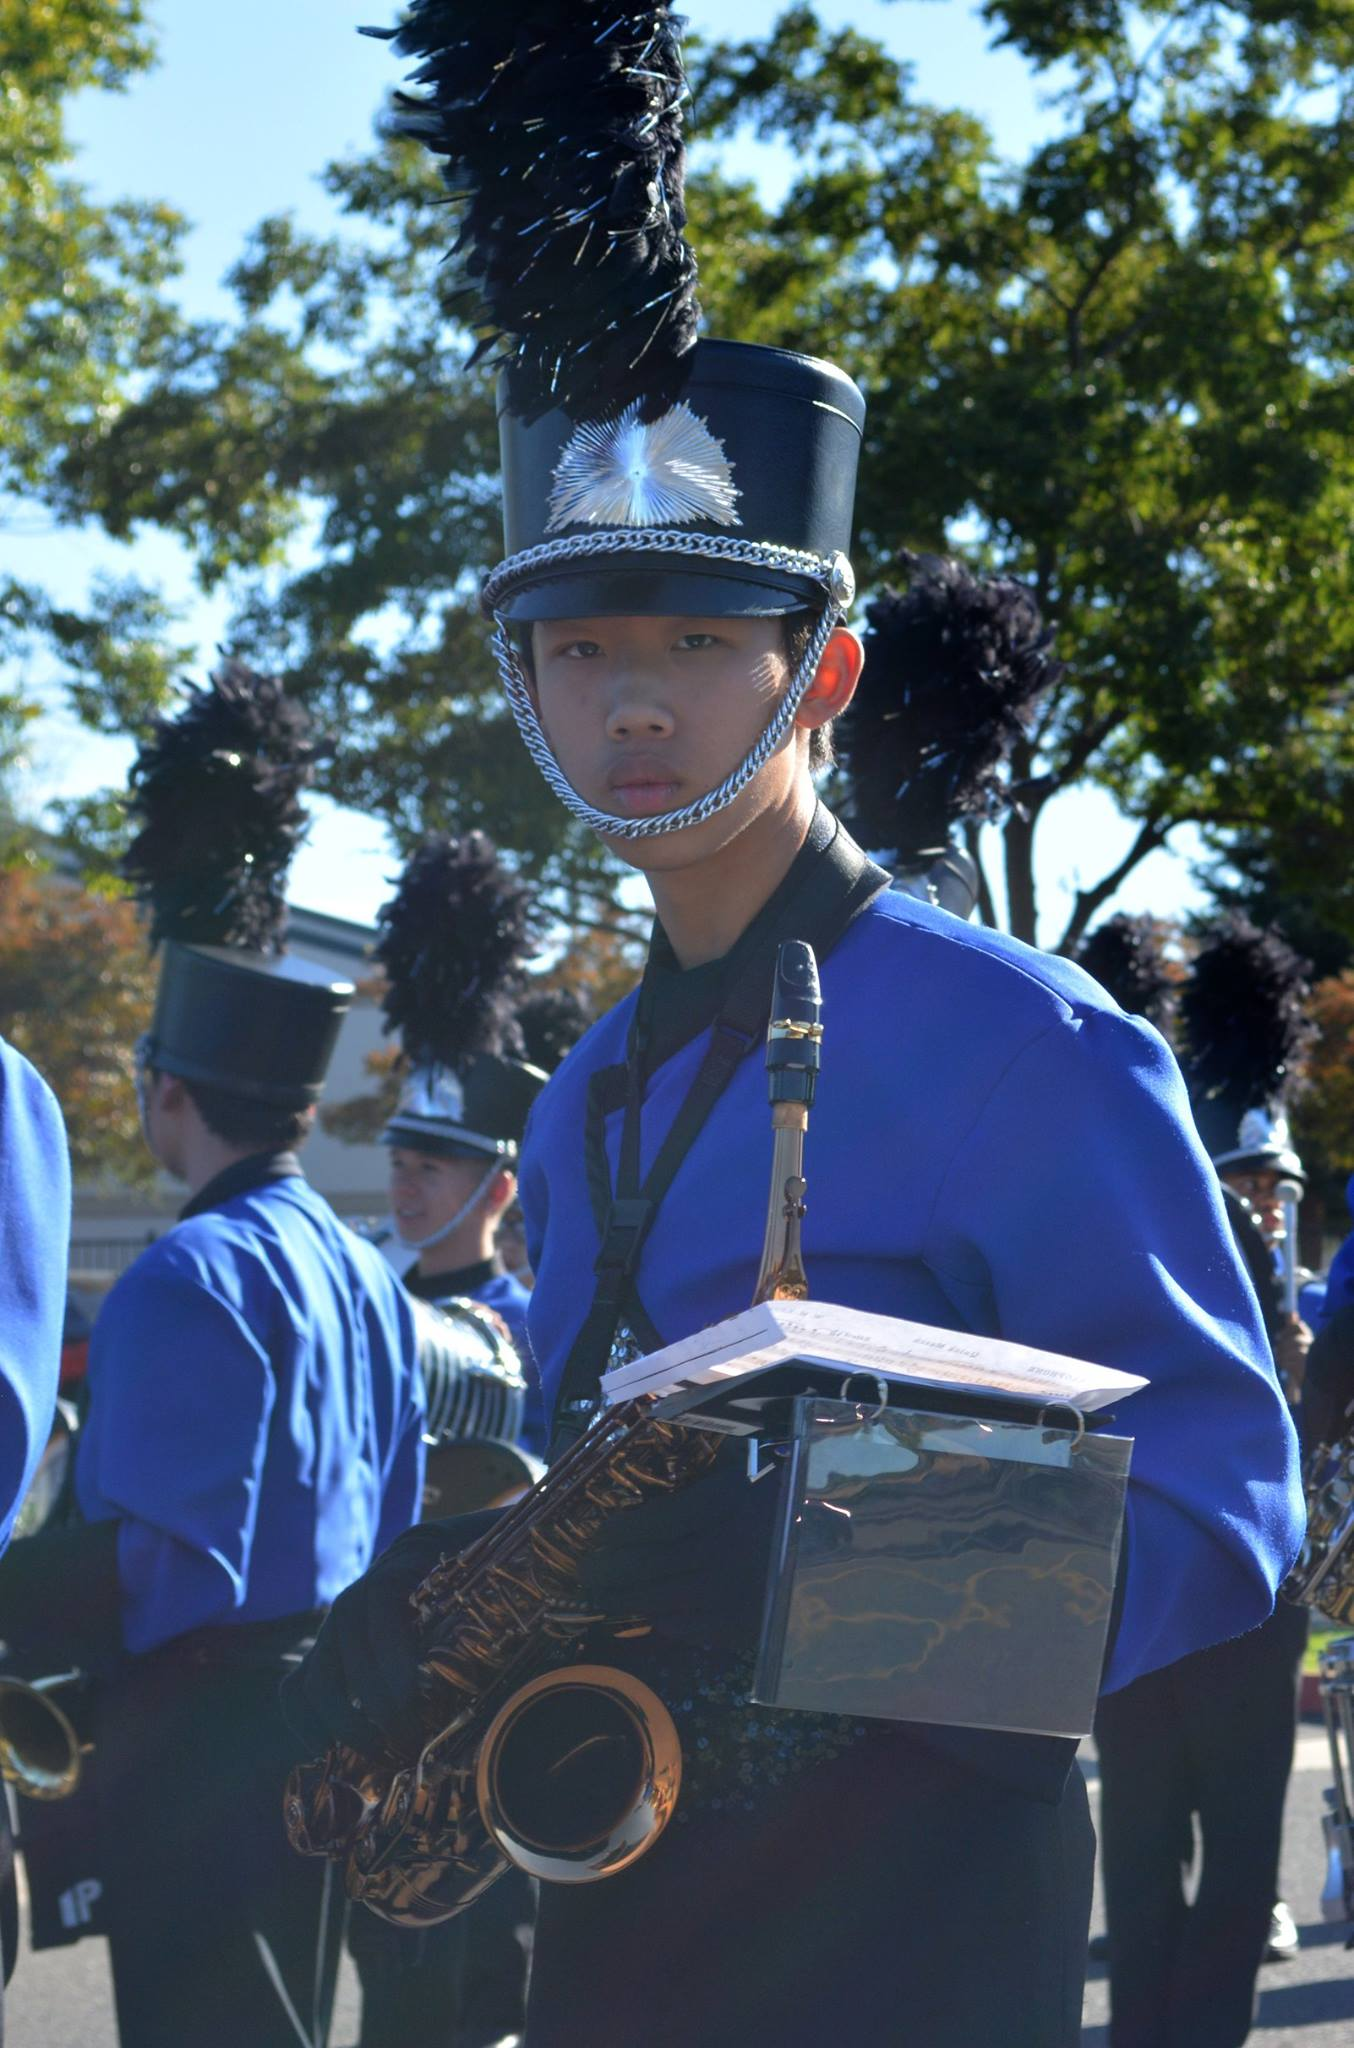 MB homecoming parade 2016. Juliun Sun.jpg